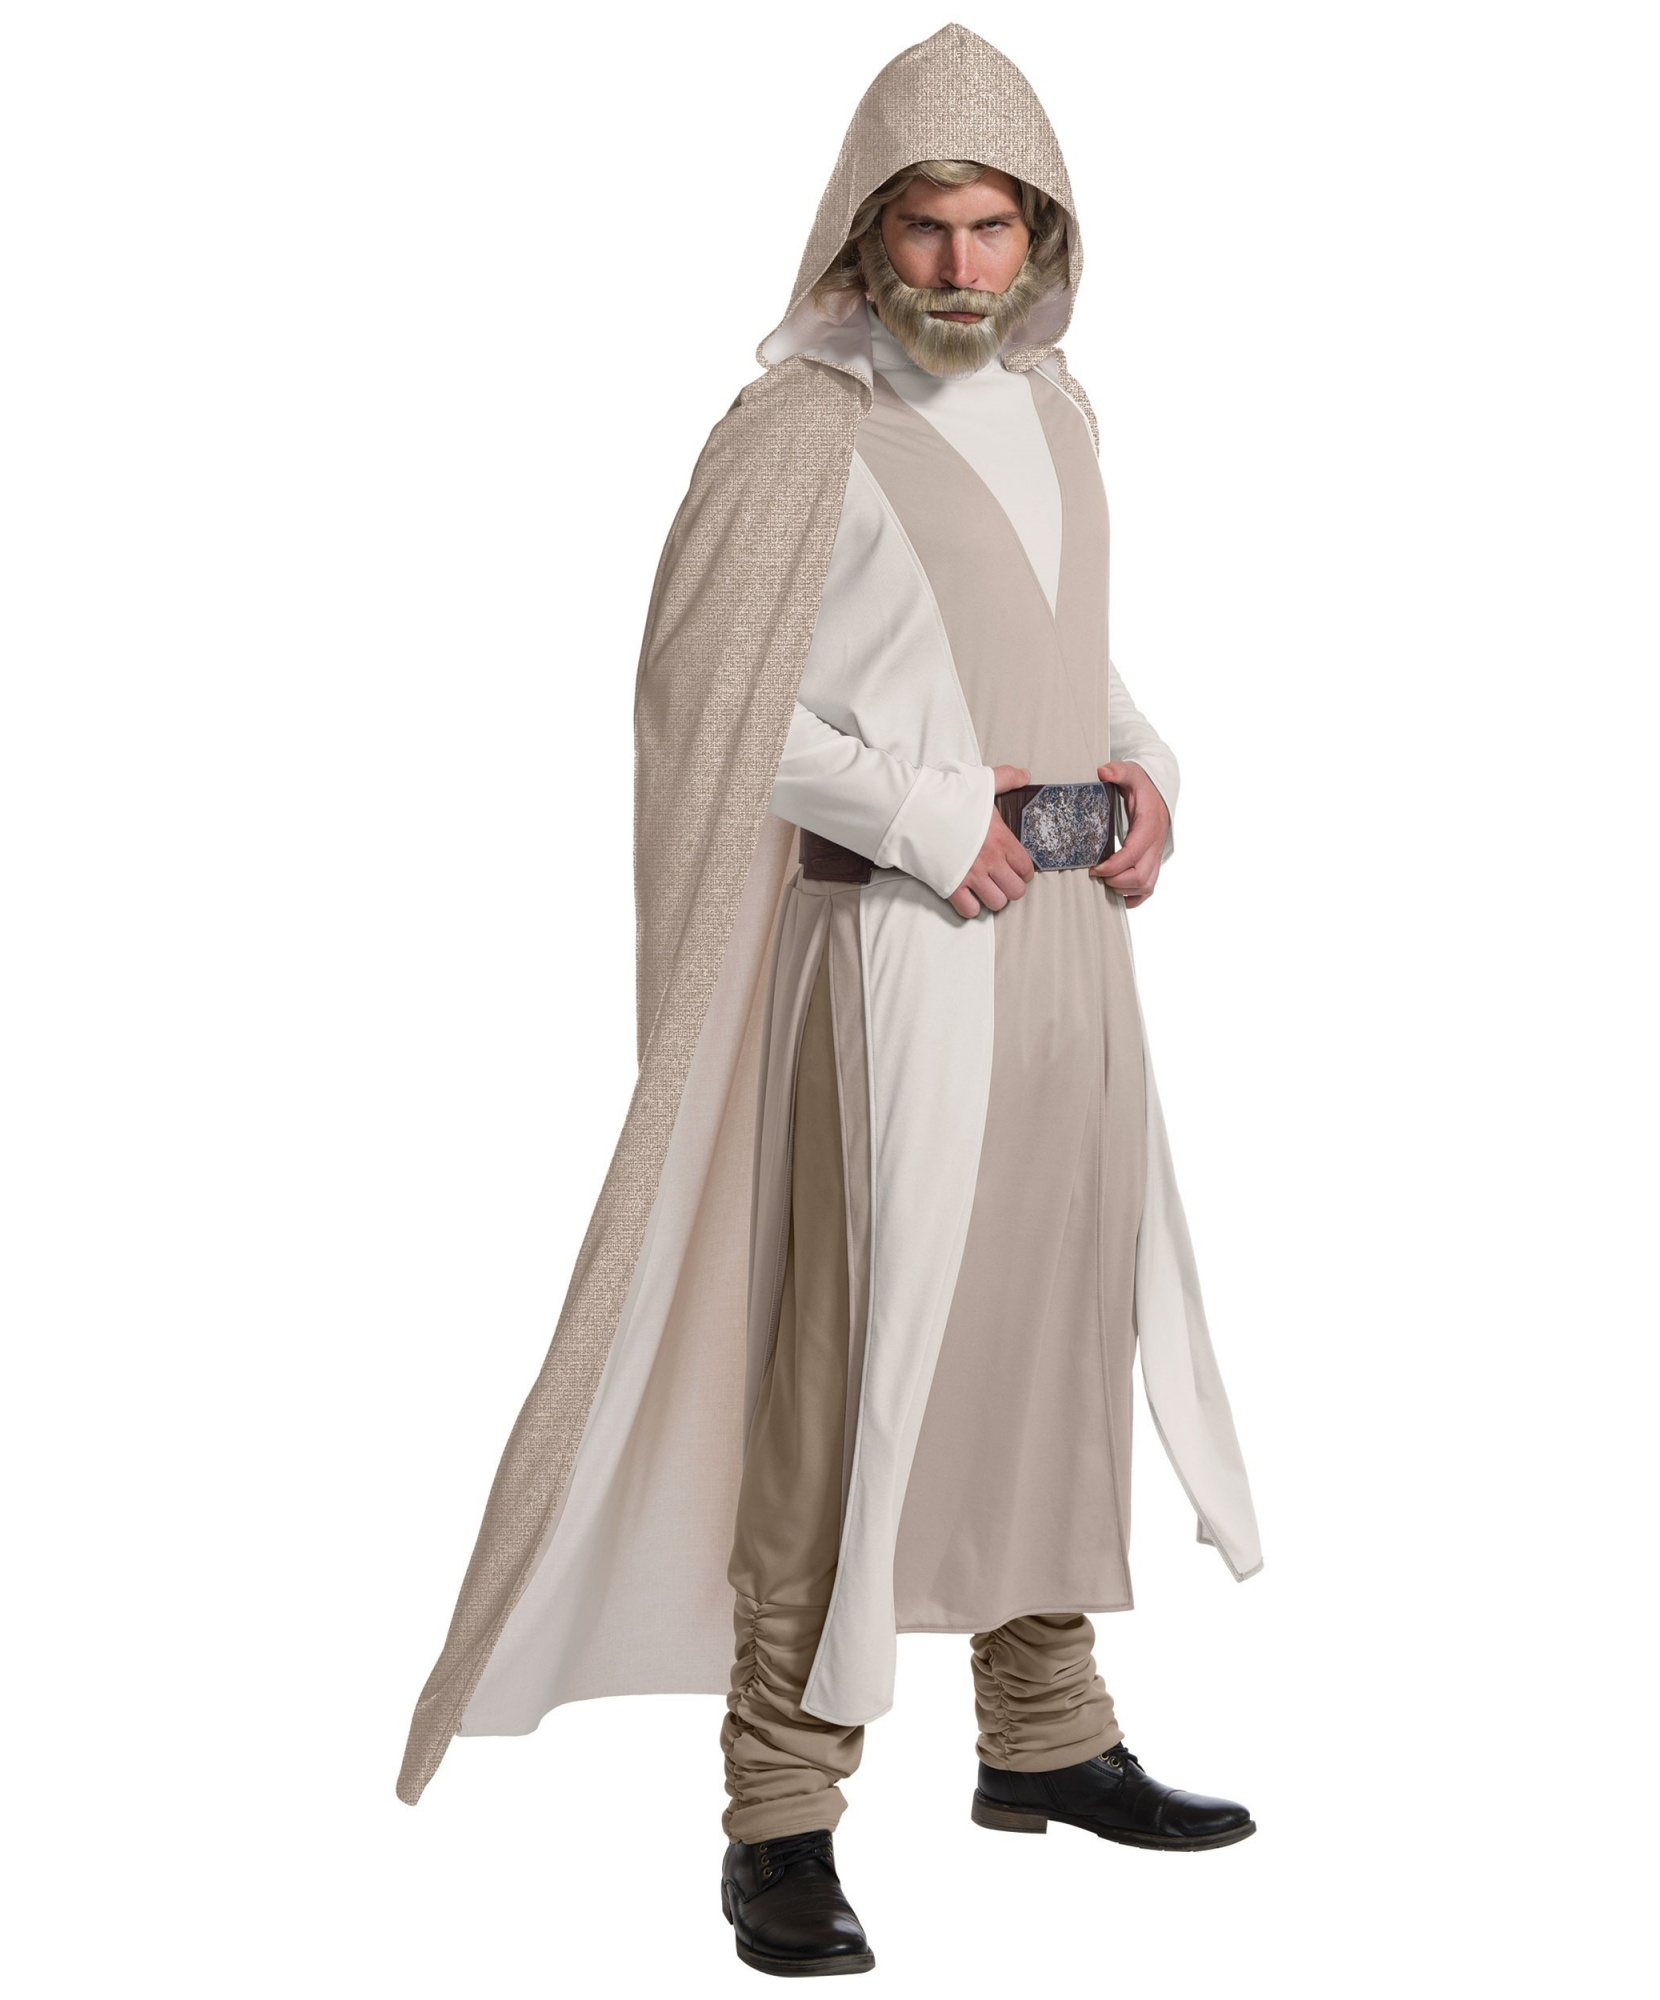 luke skywalker costume - HD